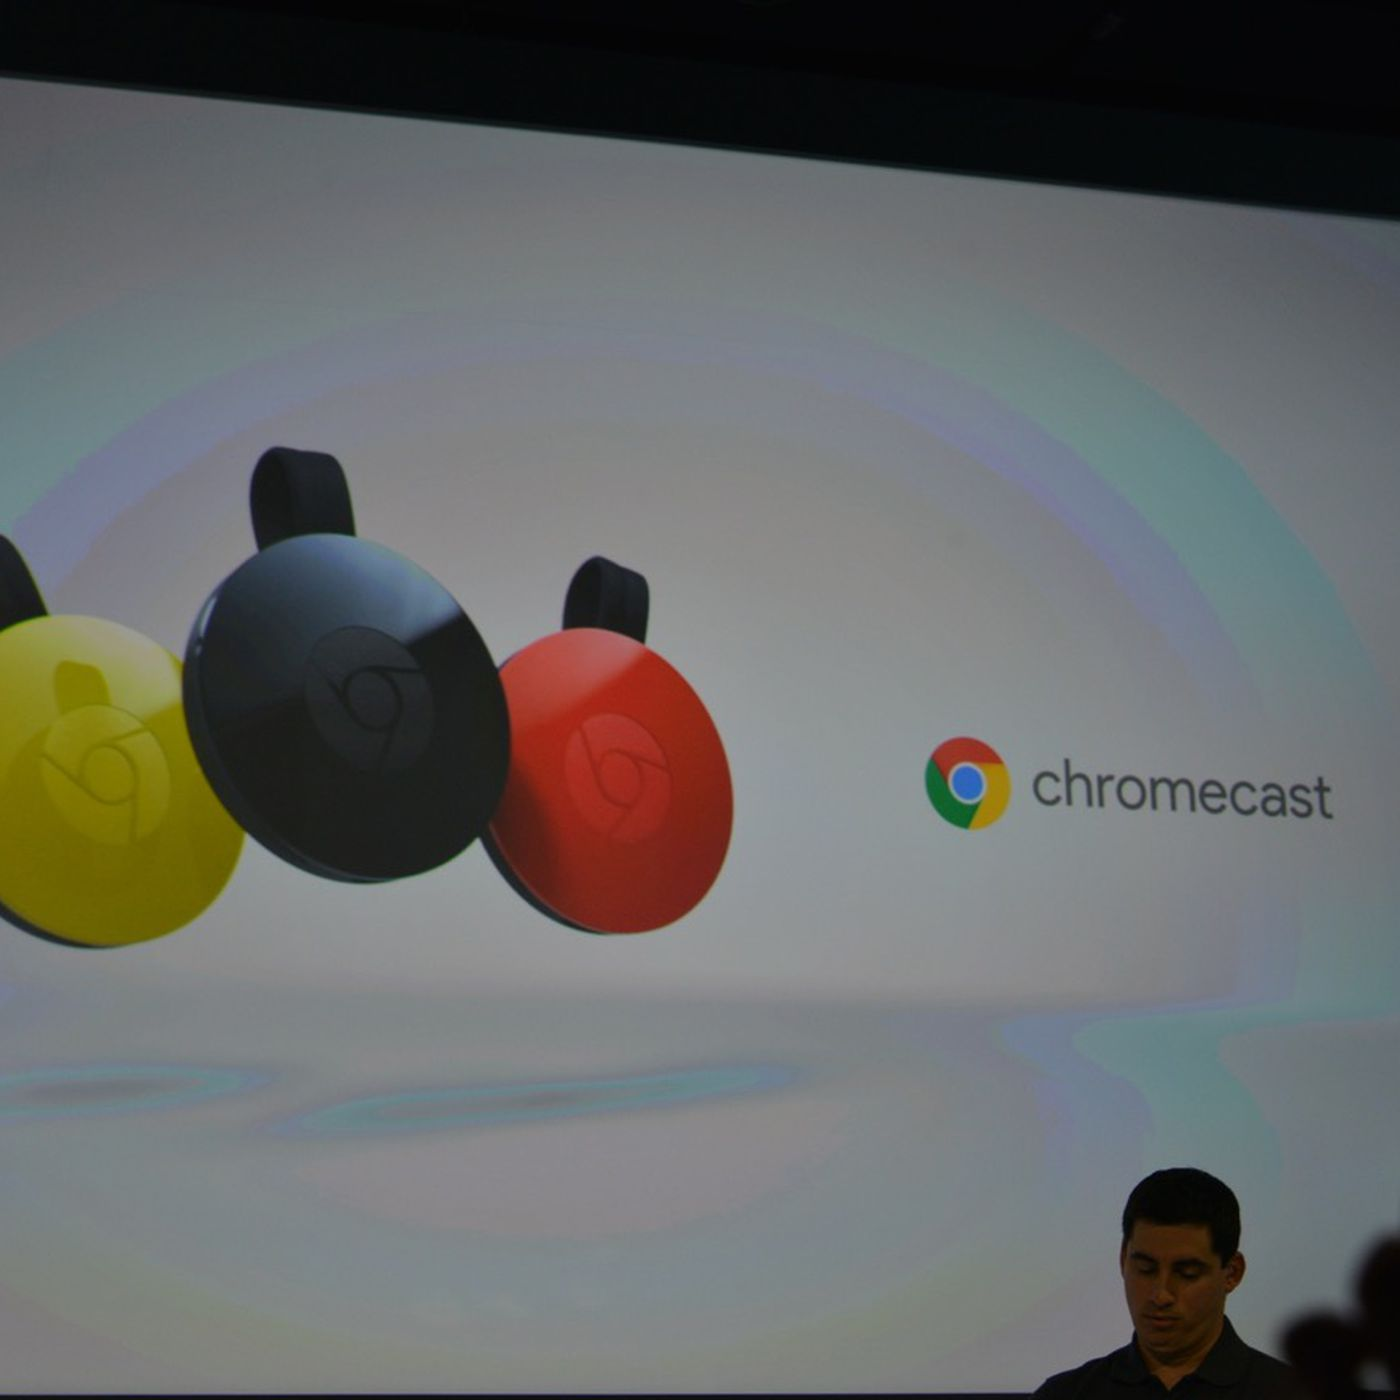 Chromecast adds support for showtime today sling tv in the next chromecast adds support for showtime today sling tv in the next few weeks the verge buycottarizona